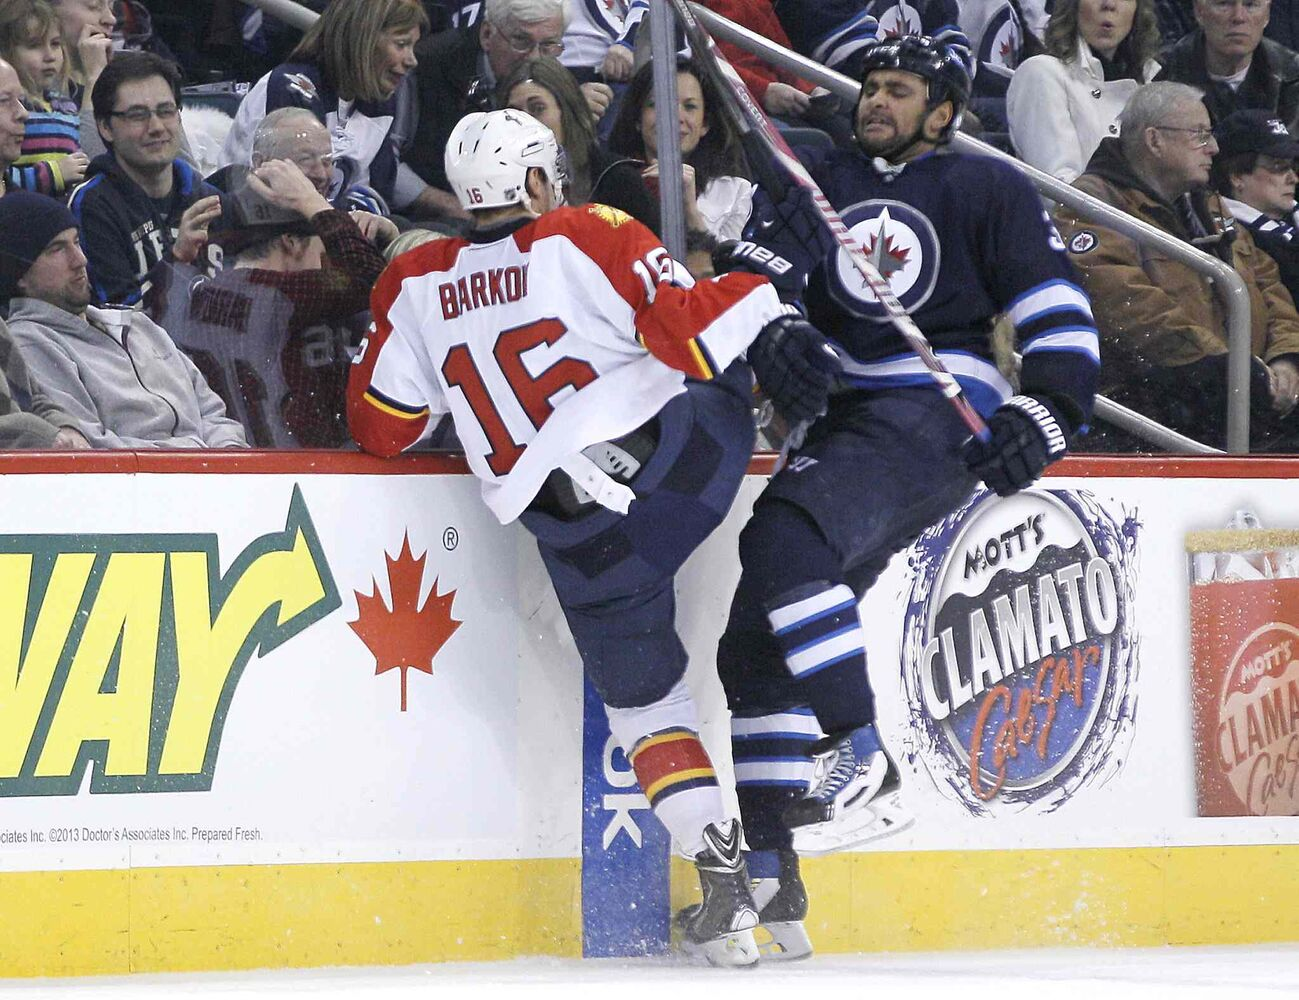 Winnipeg Jets' Dustin Byfuglien (33) and Florida Panthers' Aleksander Barkov (16) collide during the second period.